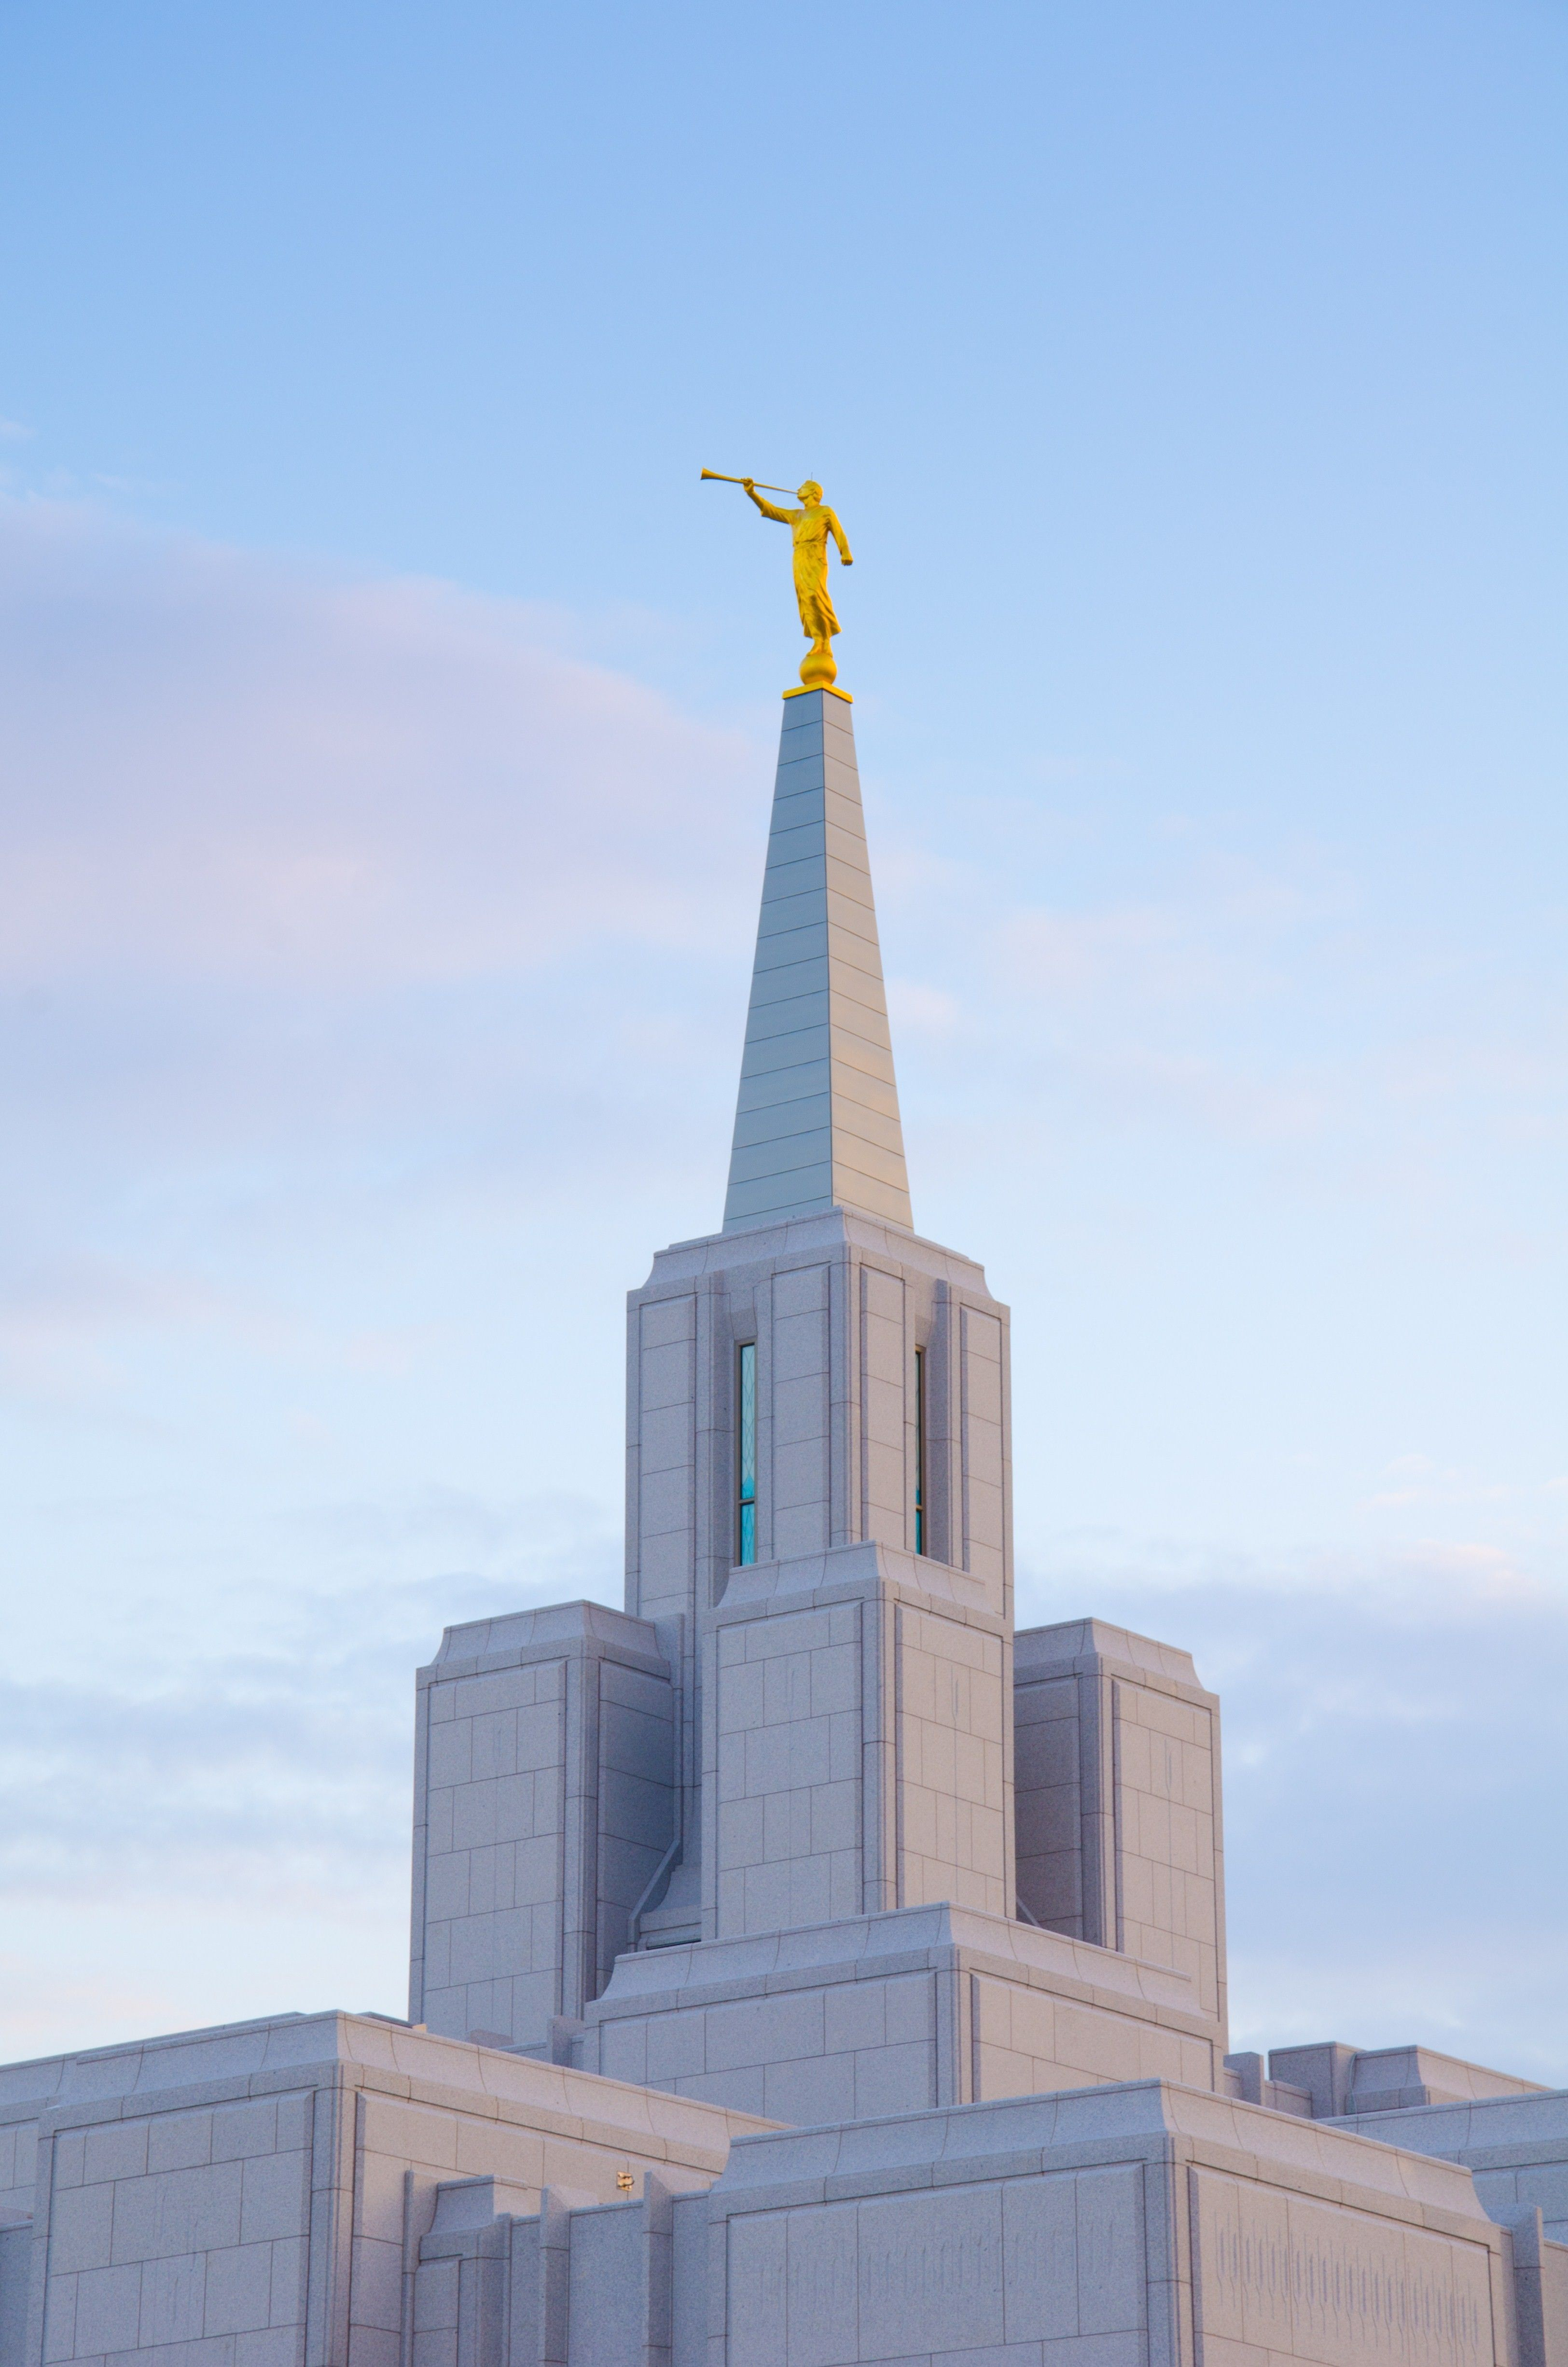 The angel Moroni stands on top of the spire of the Calgary Alberta Temple.